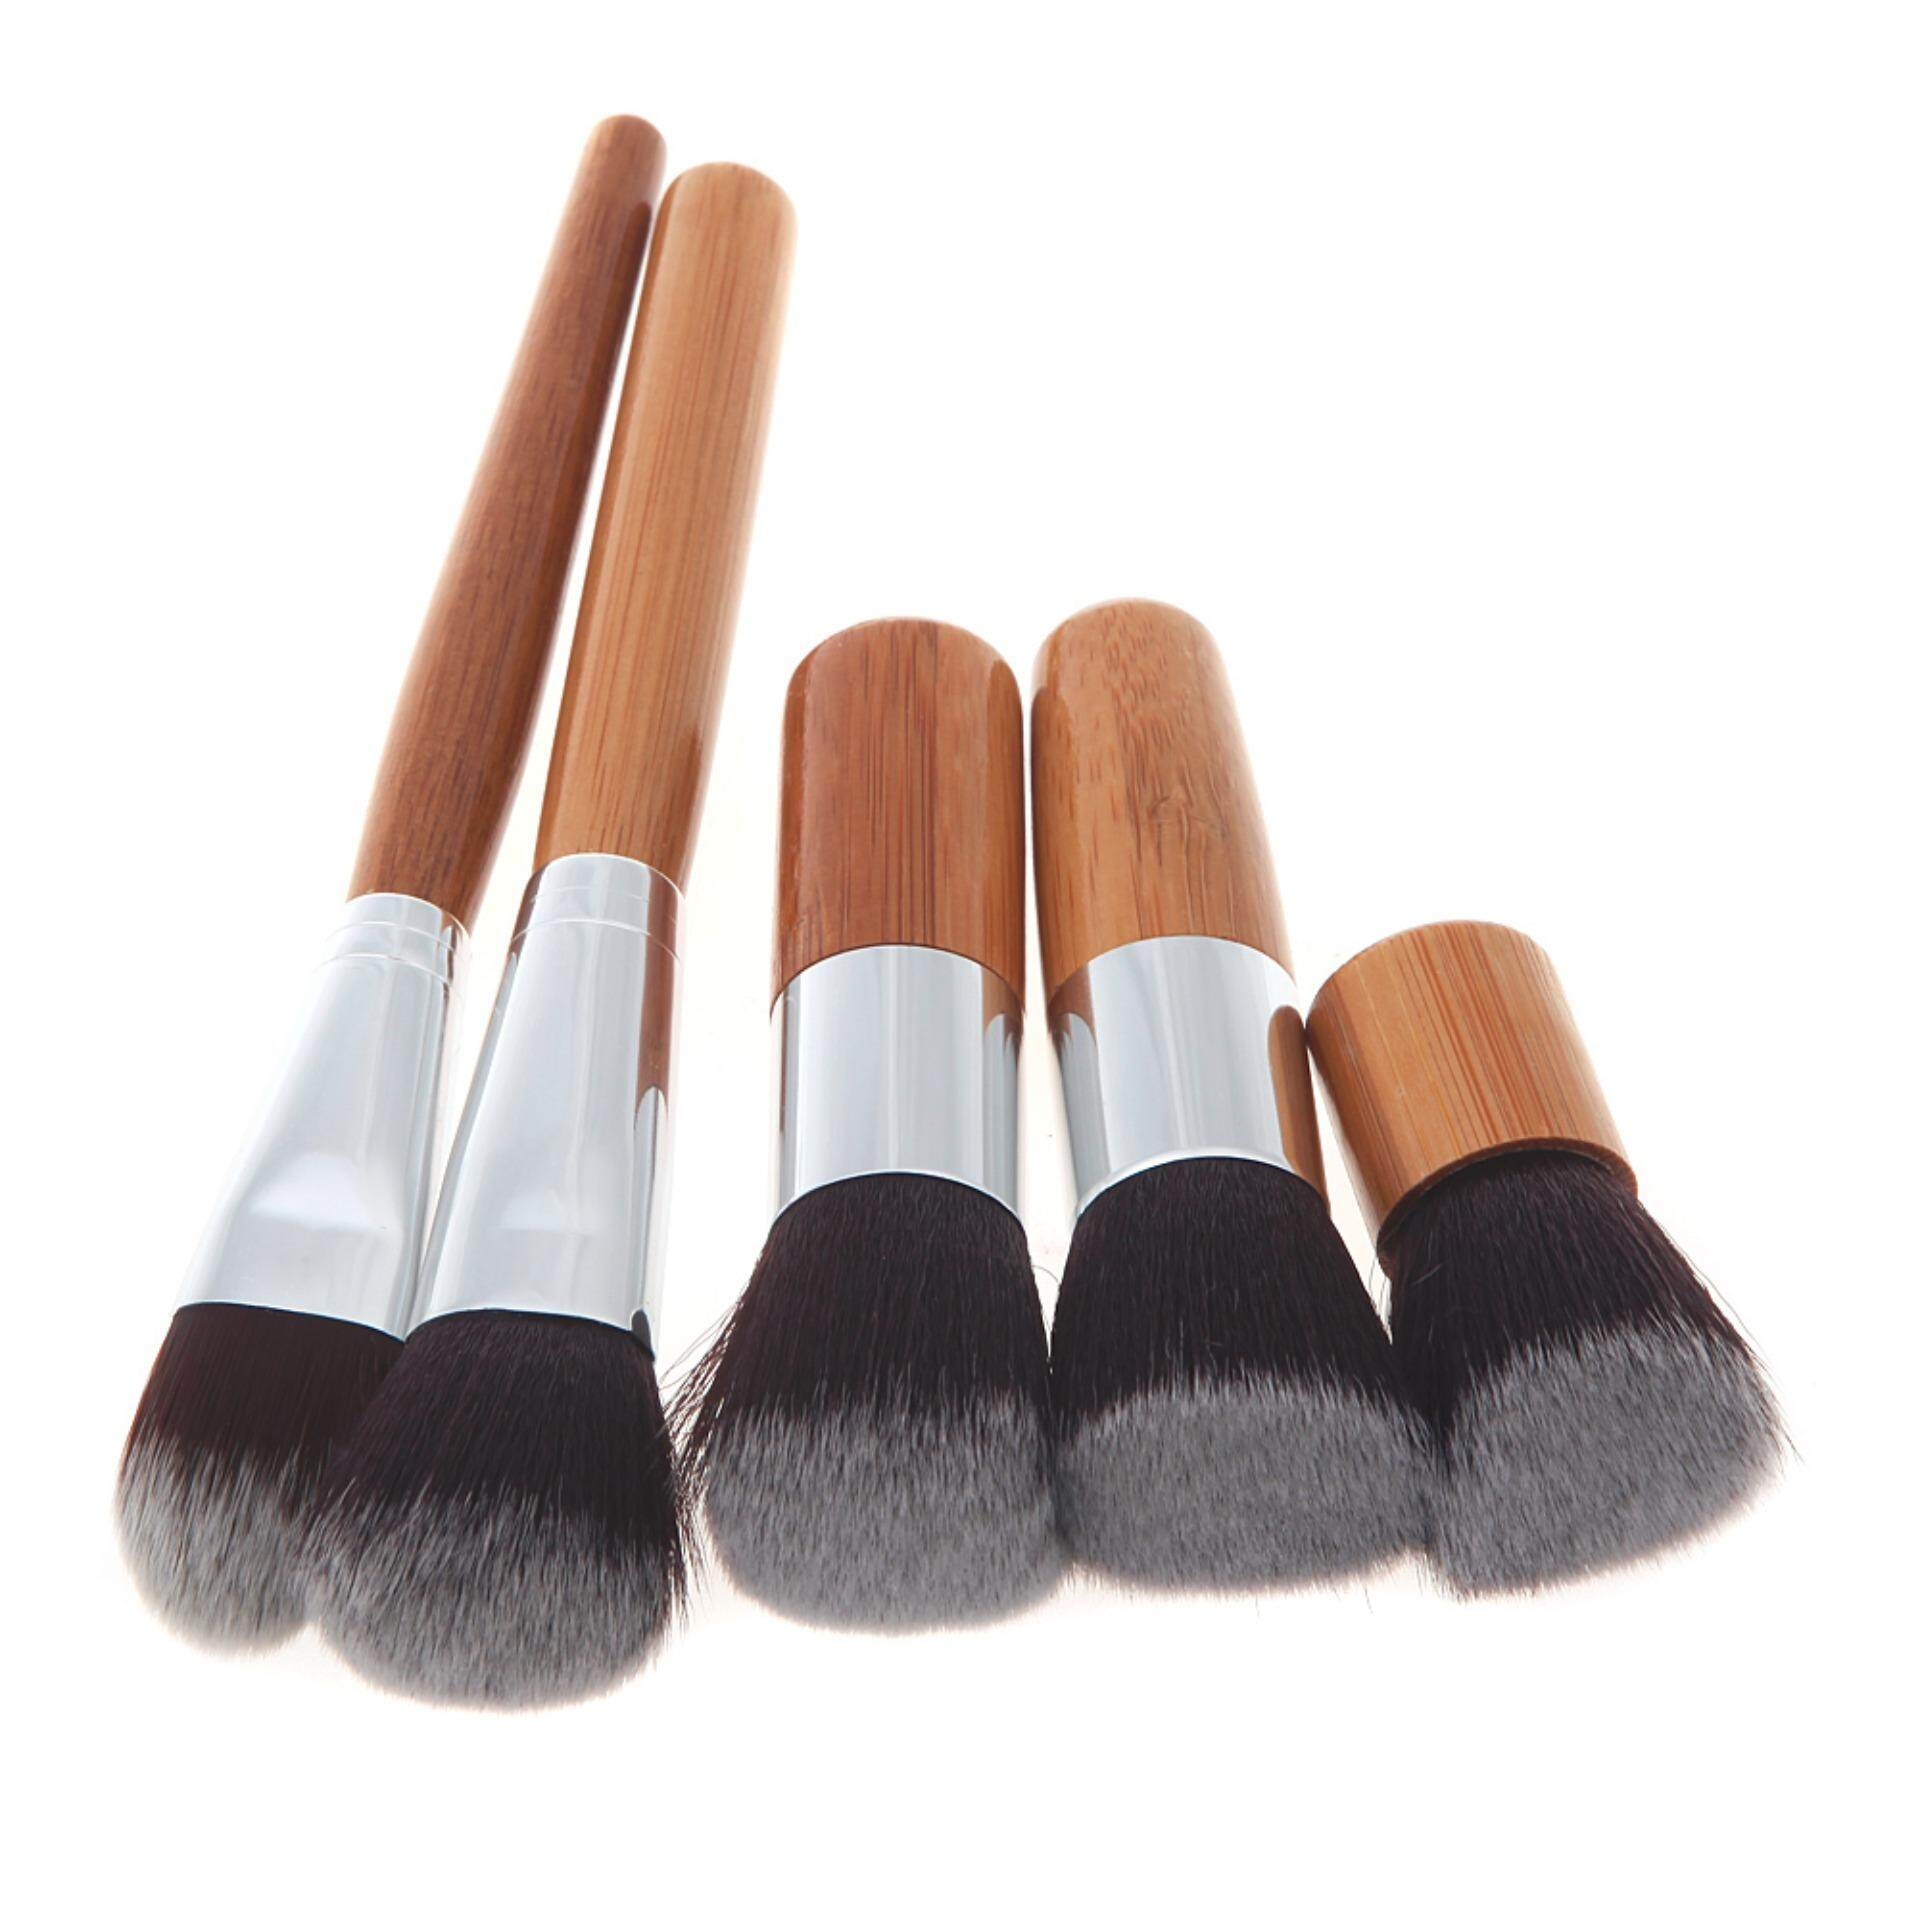 (HALAL BRUSH & FREE BAG) WJS HALAL Cosmetic New 12 Piece makeup make up Brush Set Bamboo Handle Premium Synthetic Kabuki Foundation Blending Blush Concealer Eye Face Liquid Powder Cream Cosmetics Brushes Kit With Bag